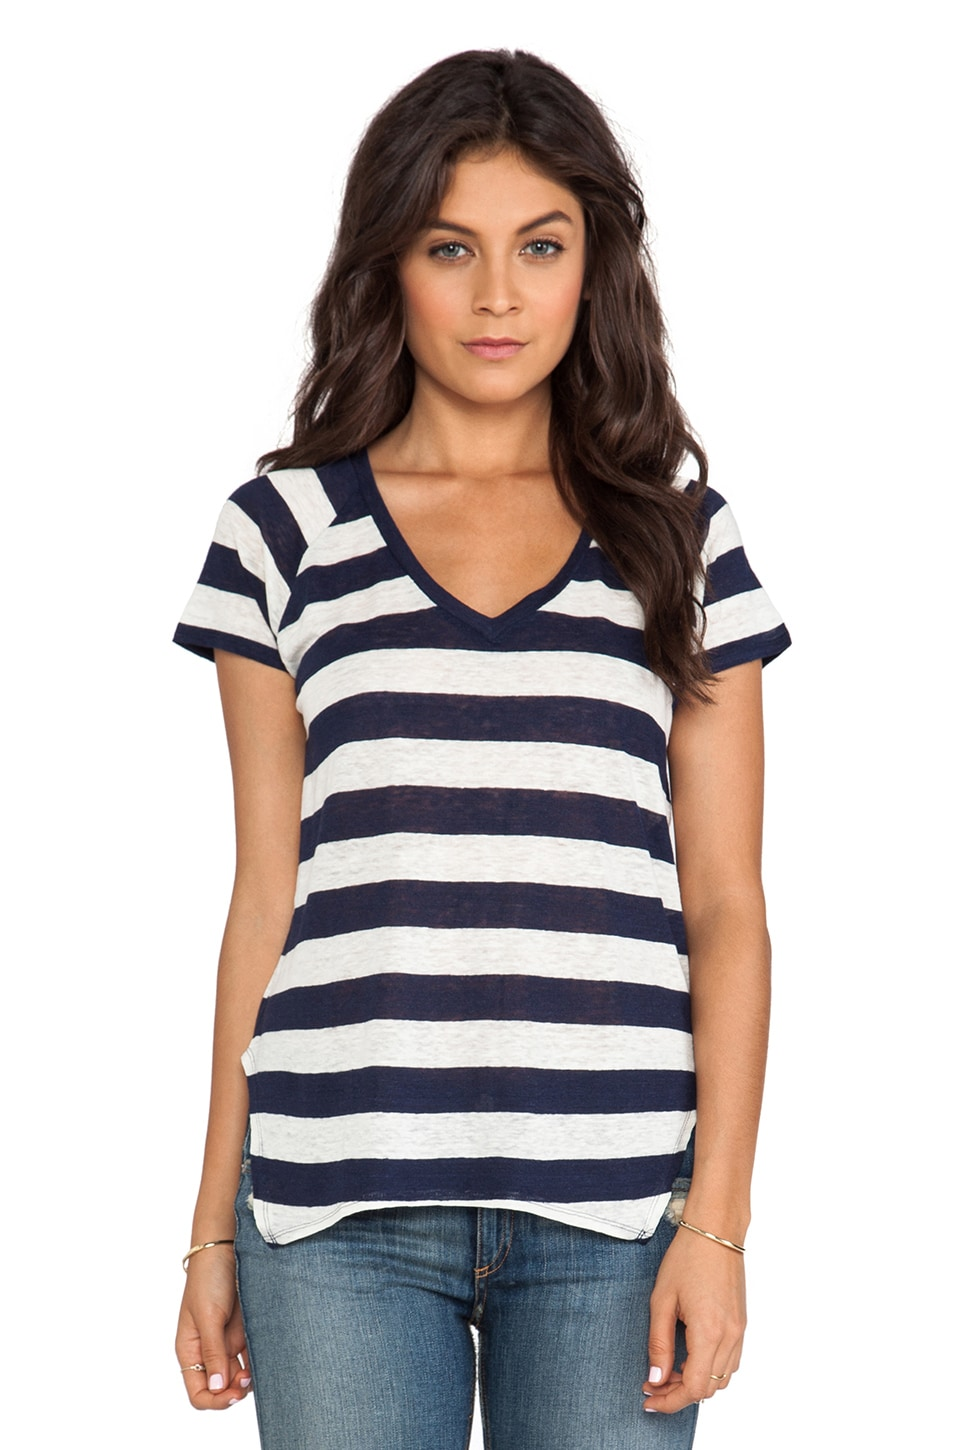 Velvet by Graham & Spencer Fara Stripe Linen Knit Tee in Midnight